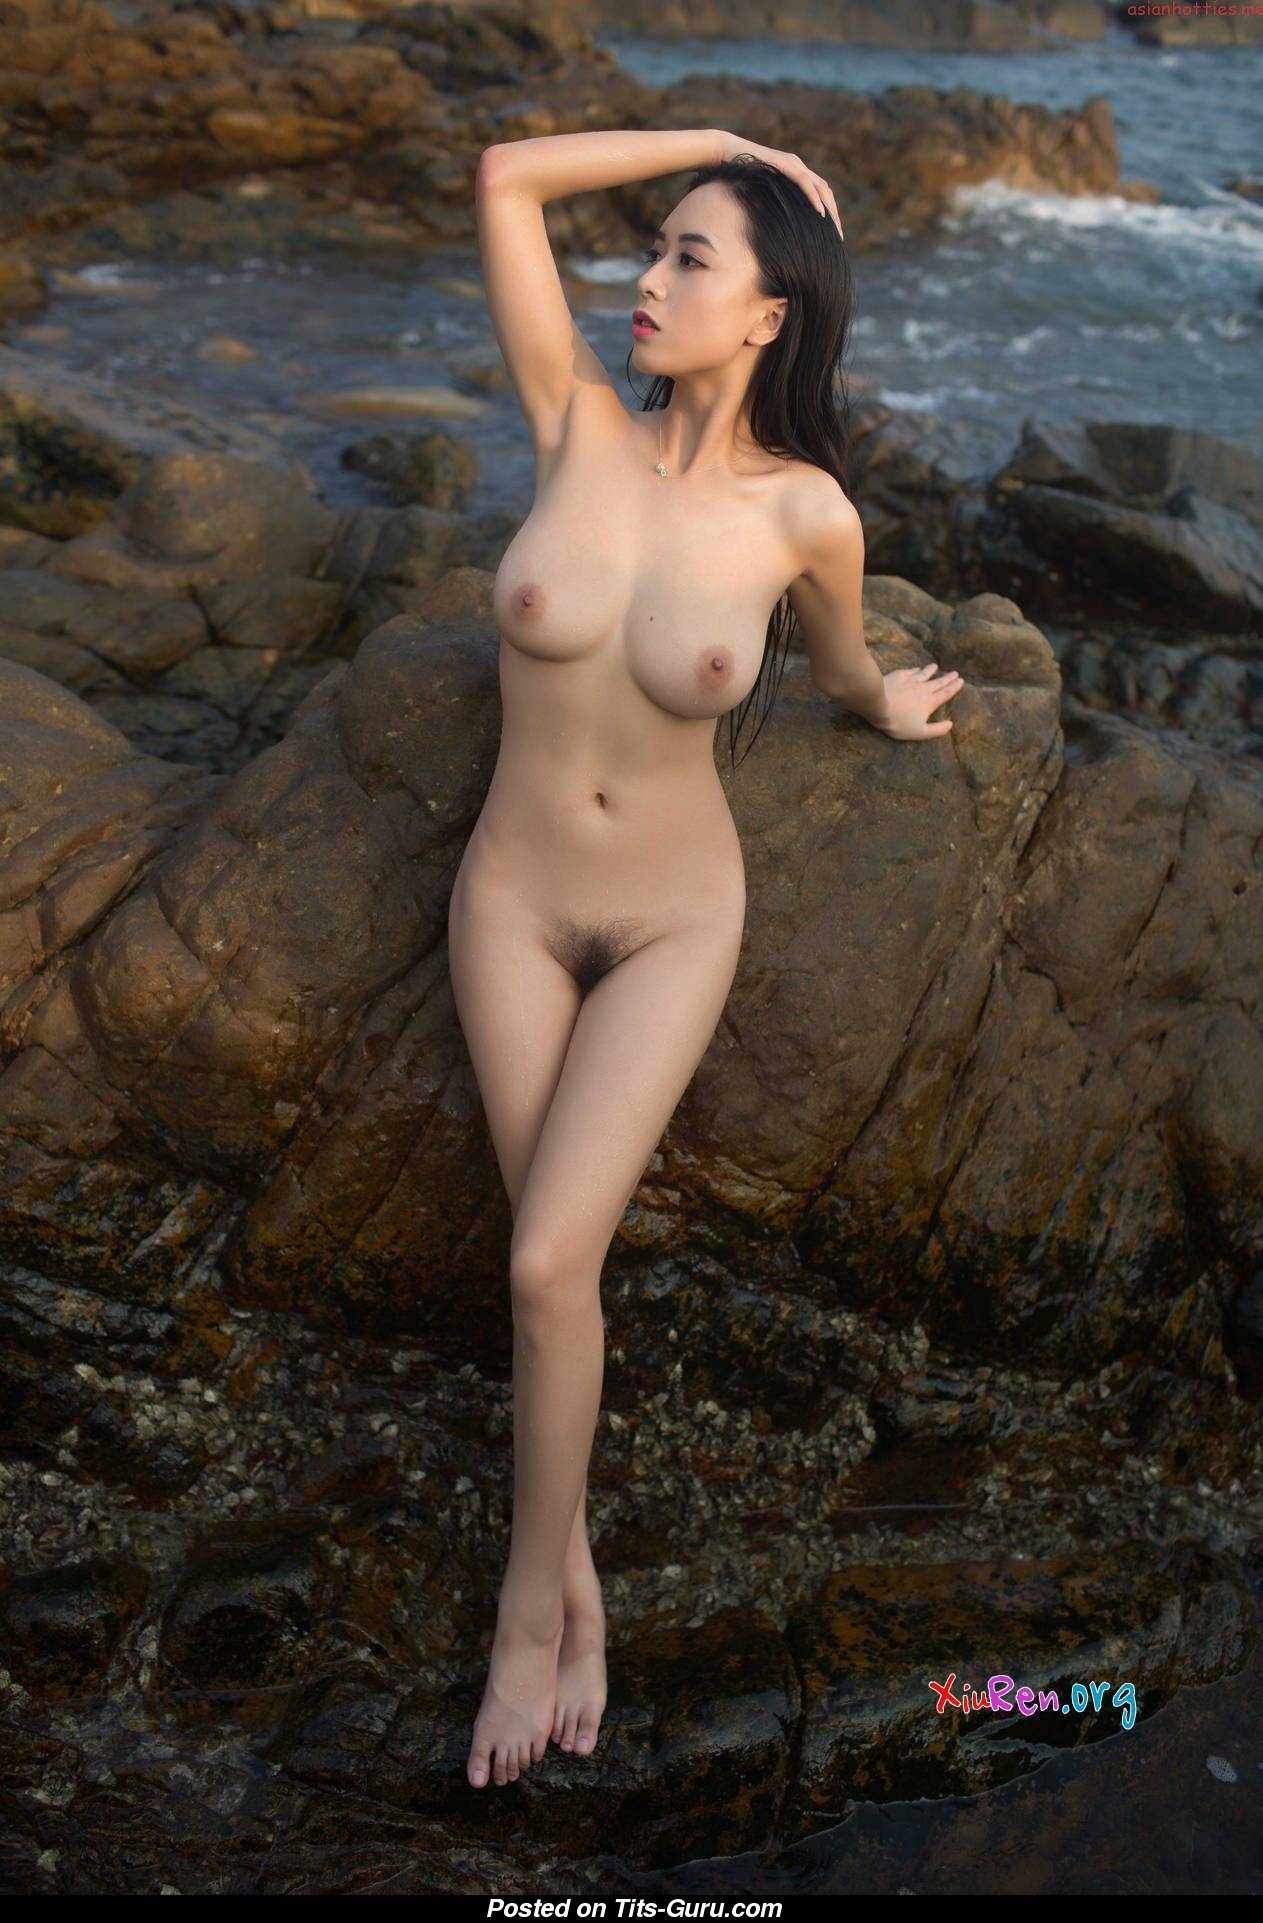 Chinese huang porn site